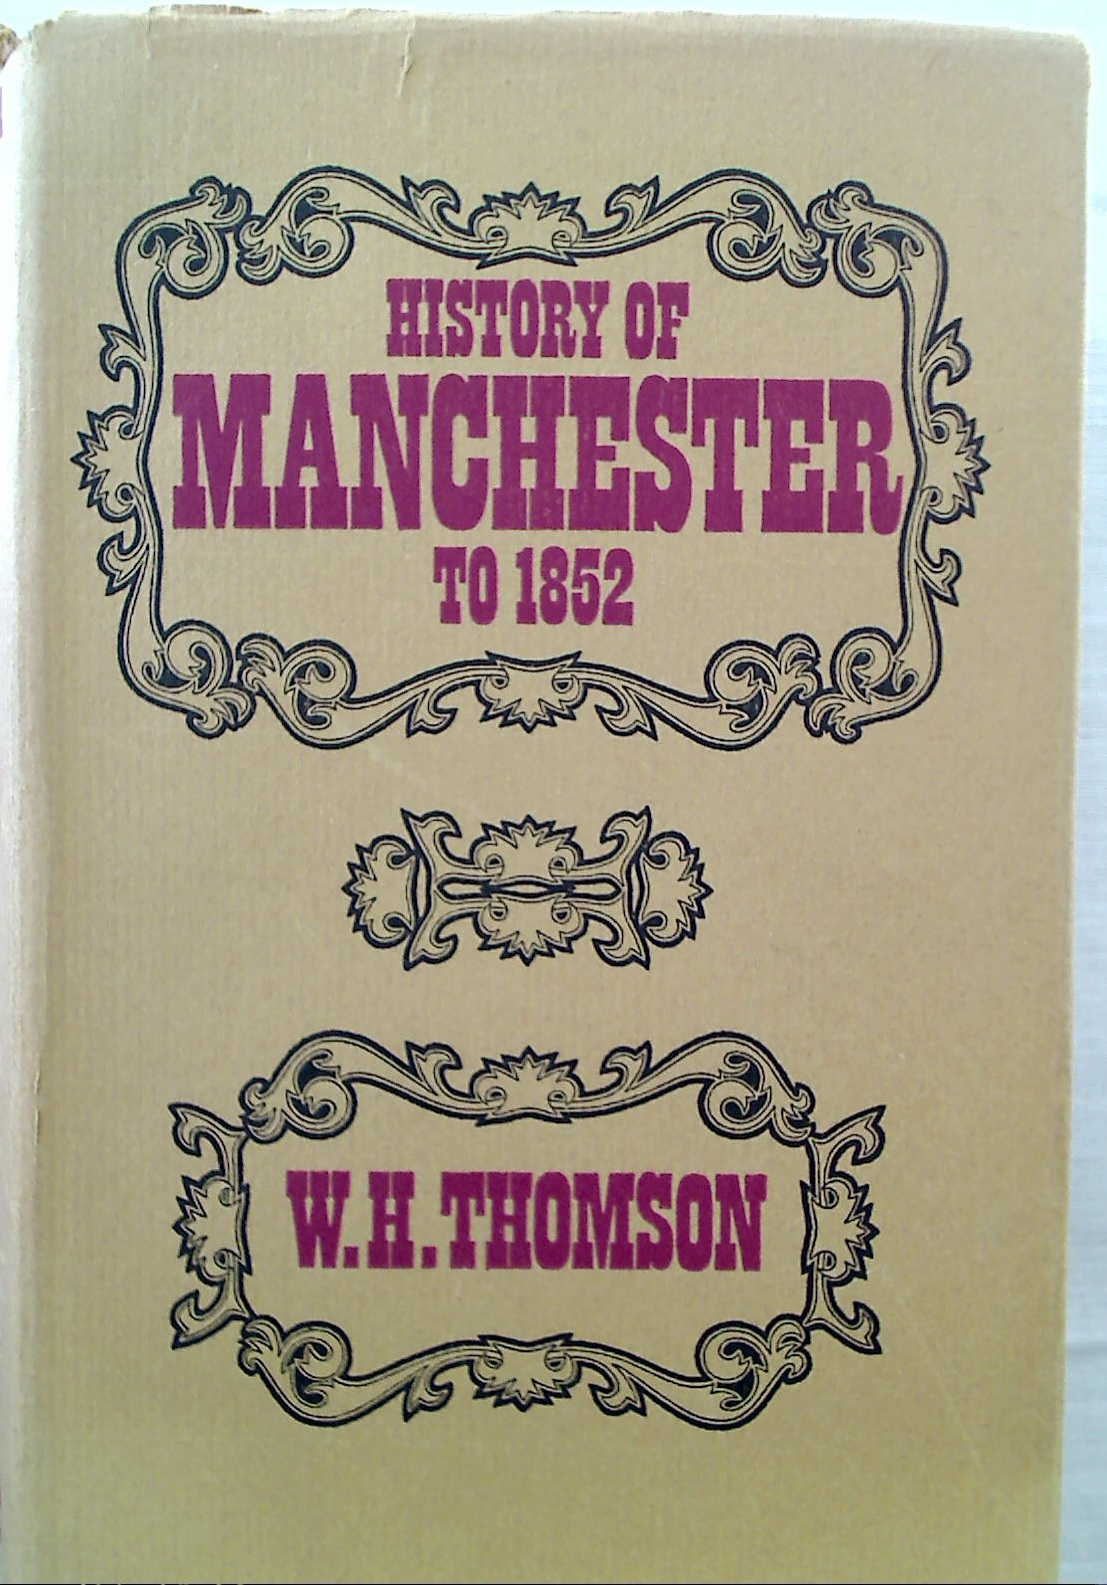 History of Manchester to 1852.